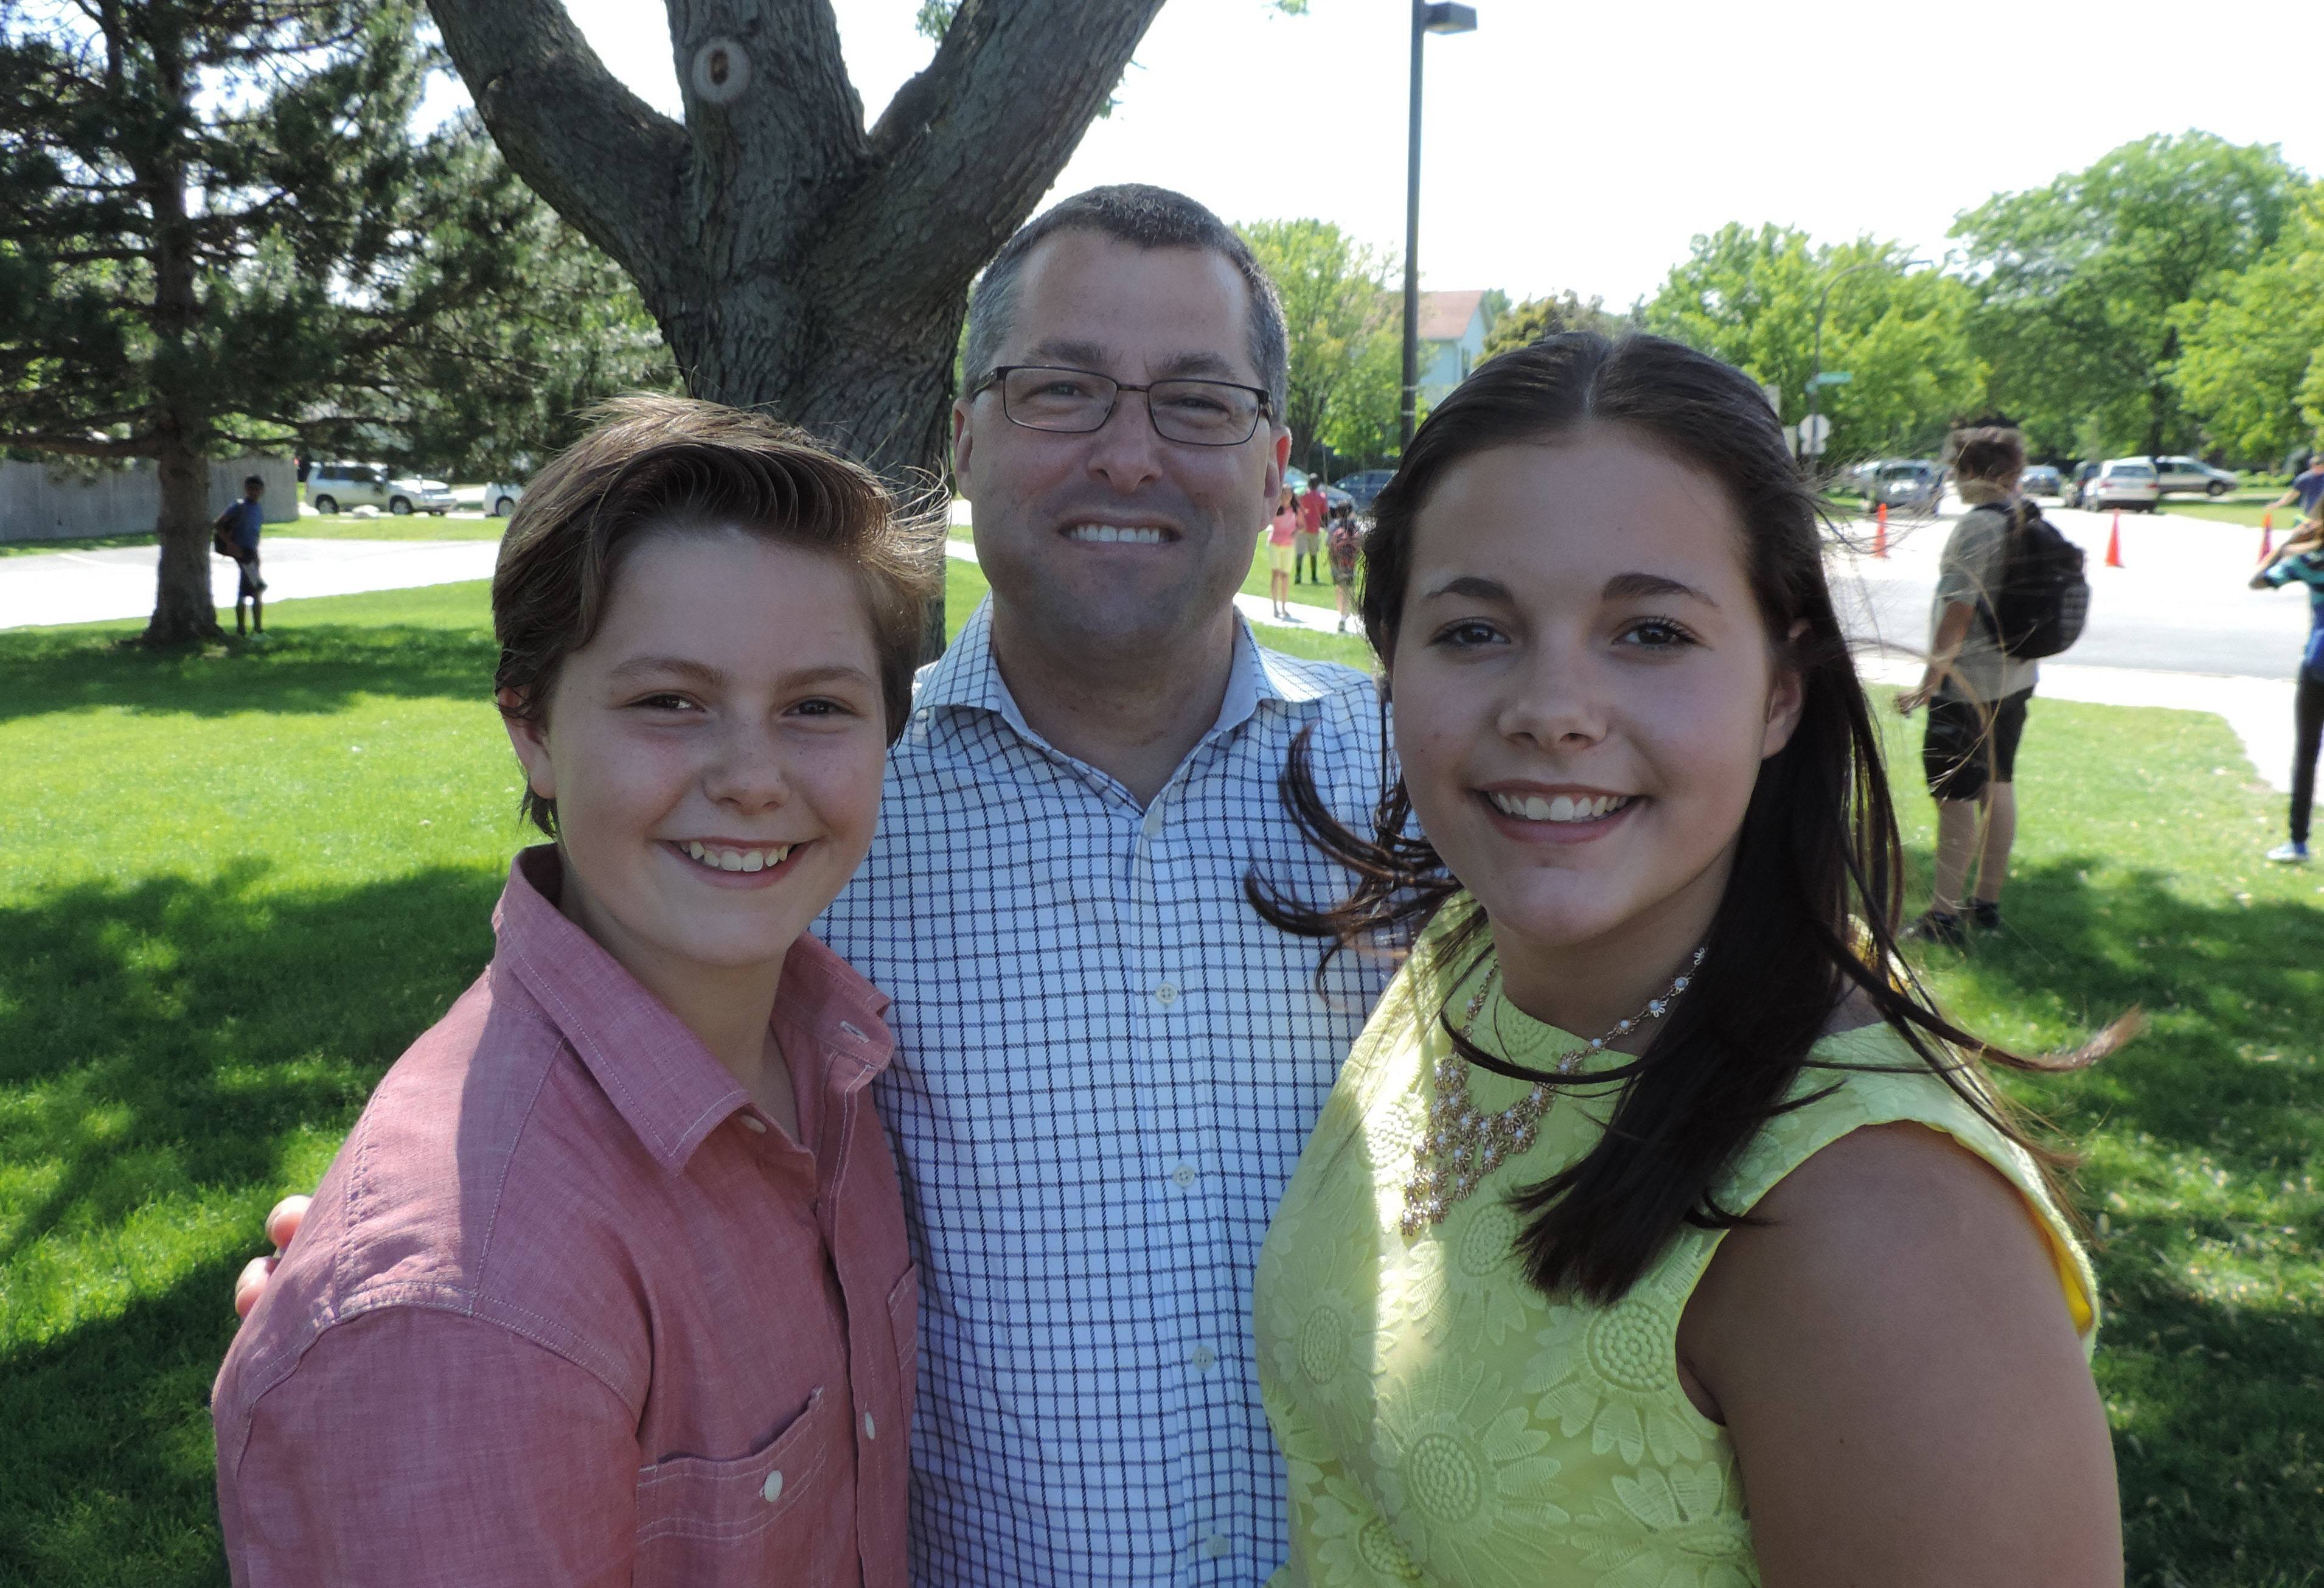 Bill Carrier, with his daughters, Rachel, left, and Lauren, organized Teen Ignite after he had trouble finding cultural and science programming in after school activities for his daughters.